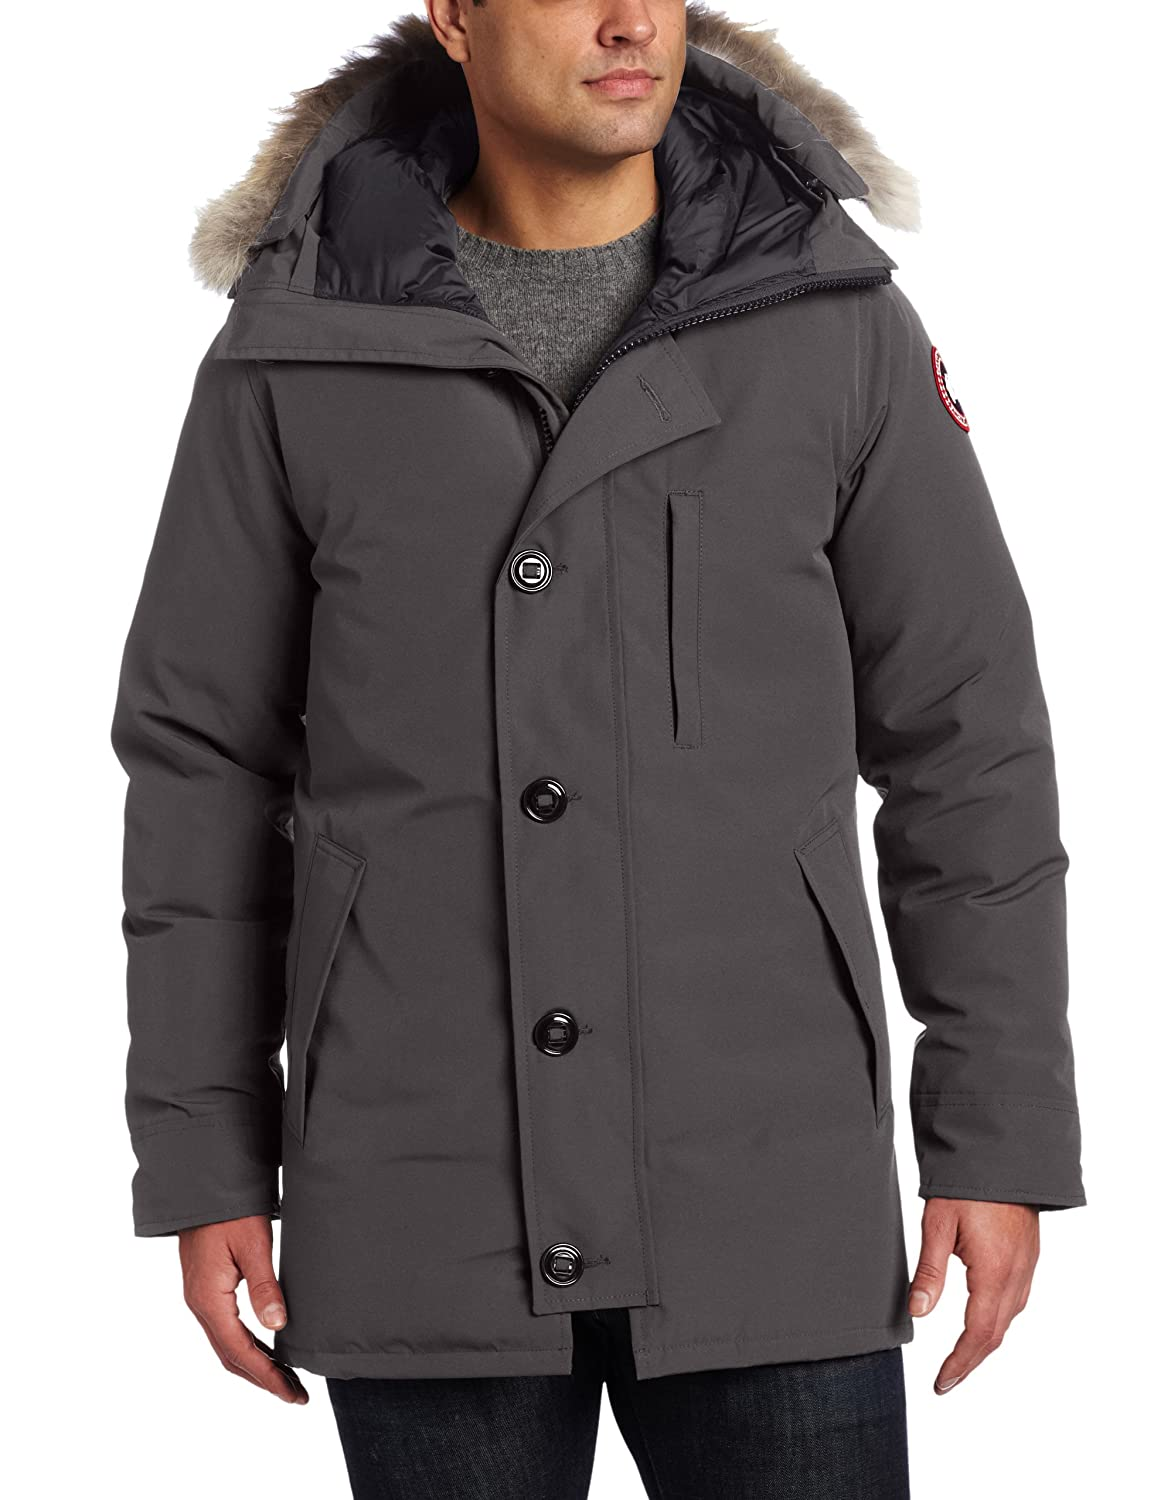 Canada Goose' Men's Chateau Parka - Black - Size Xx-Large